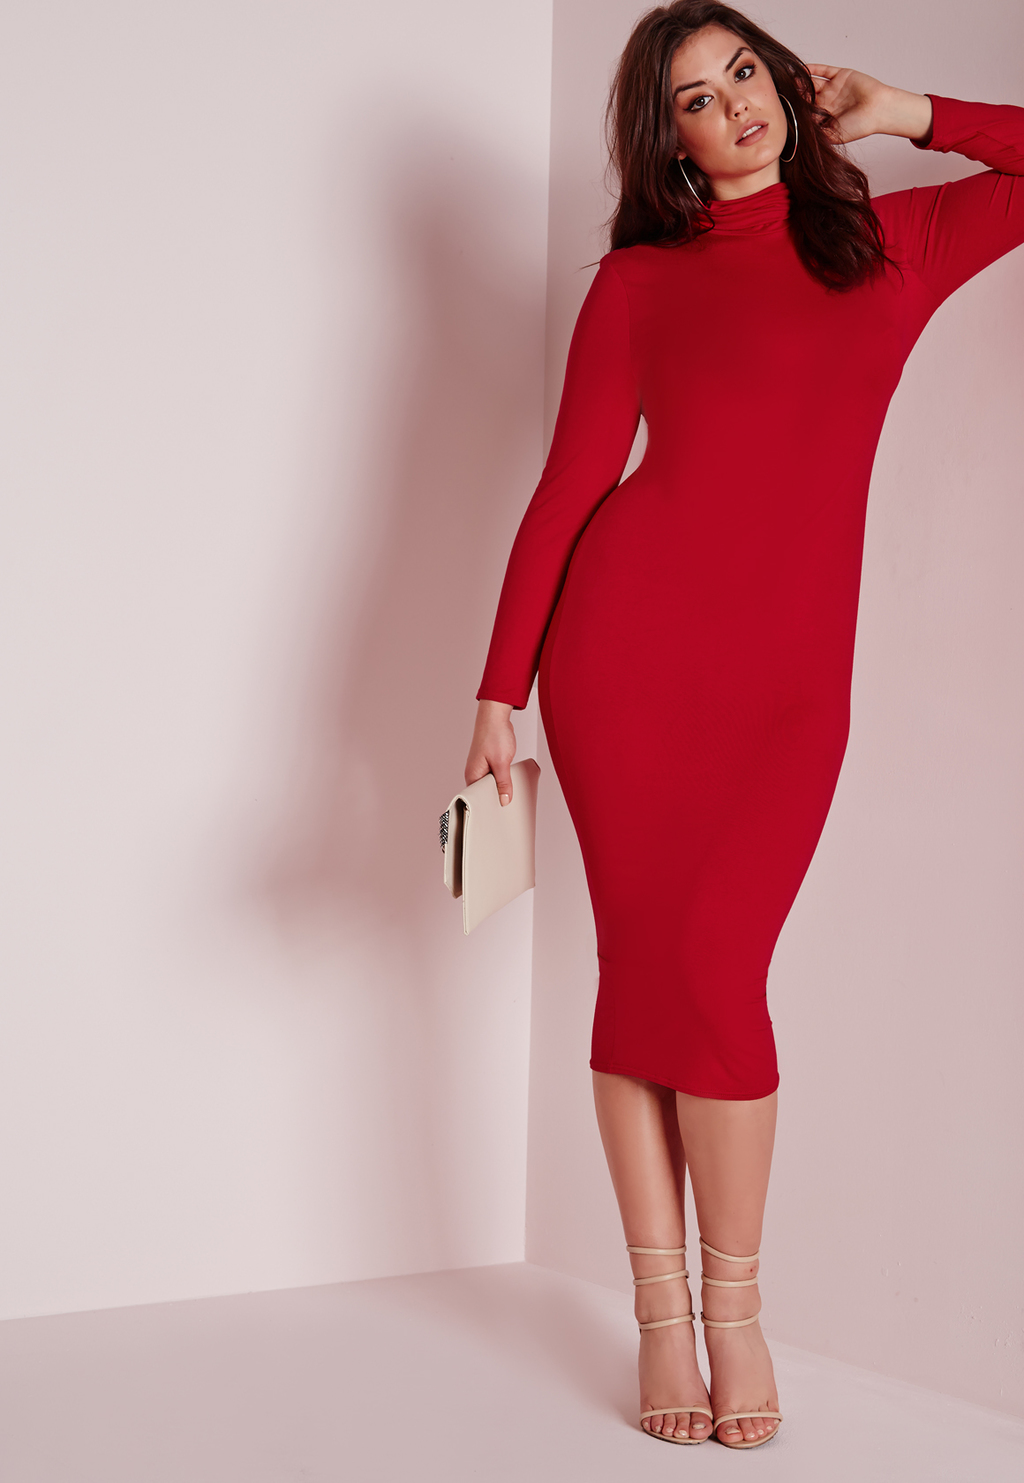 Plus Size Roll Neck Longline Jersey Dress Red, Red - length: below the knee; fit: tight; pattern: plain; neckline: high neck; style: bodycon; predominant colour: true red; occasions: evening; fibres: viscose/rayon - stretch; sleeve length: long sleeve; sleeve style: standard; pattern type: fabric; texture group: jersey - stretchy/drapey; season: s/s 2016